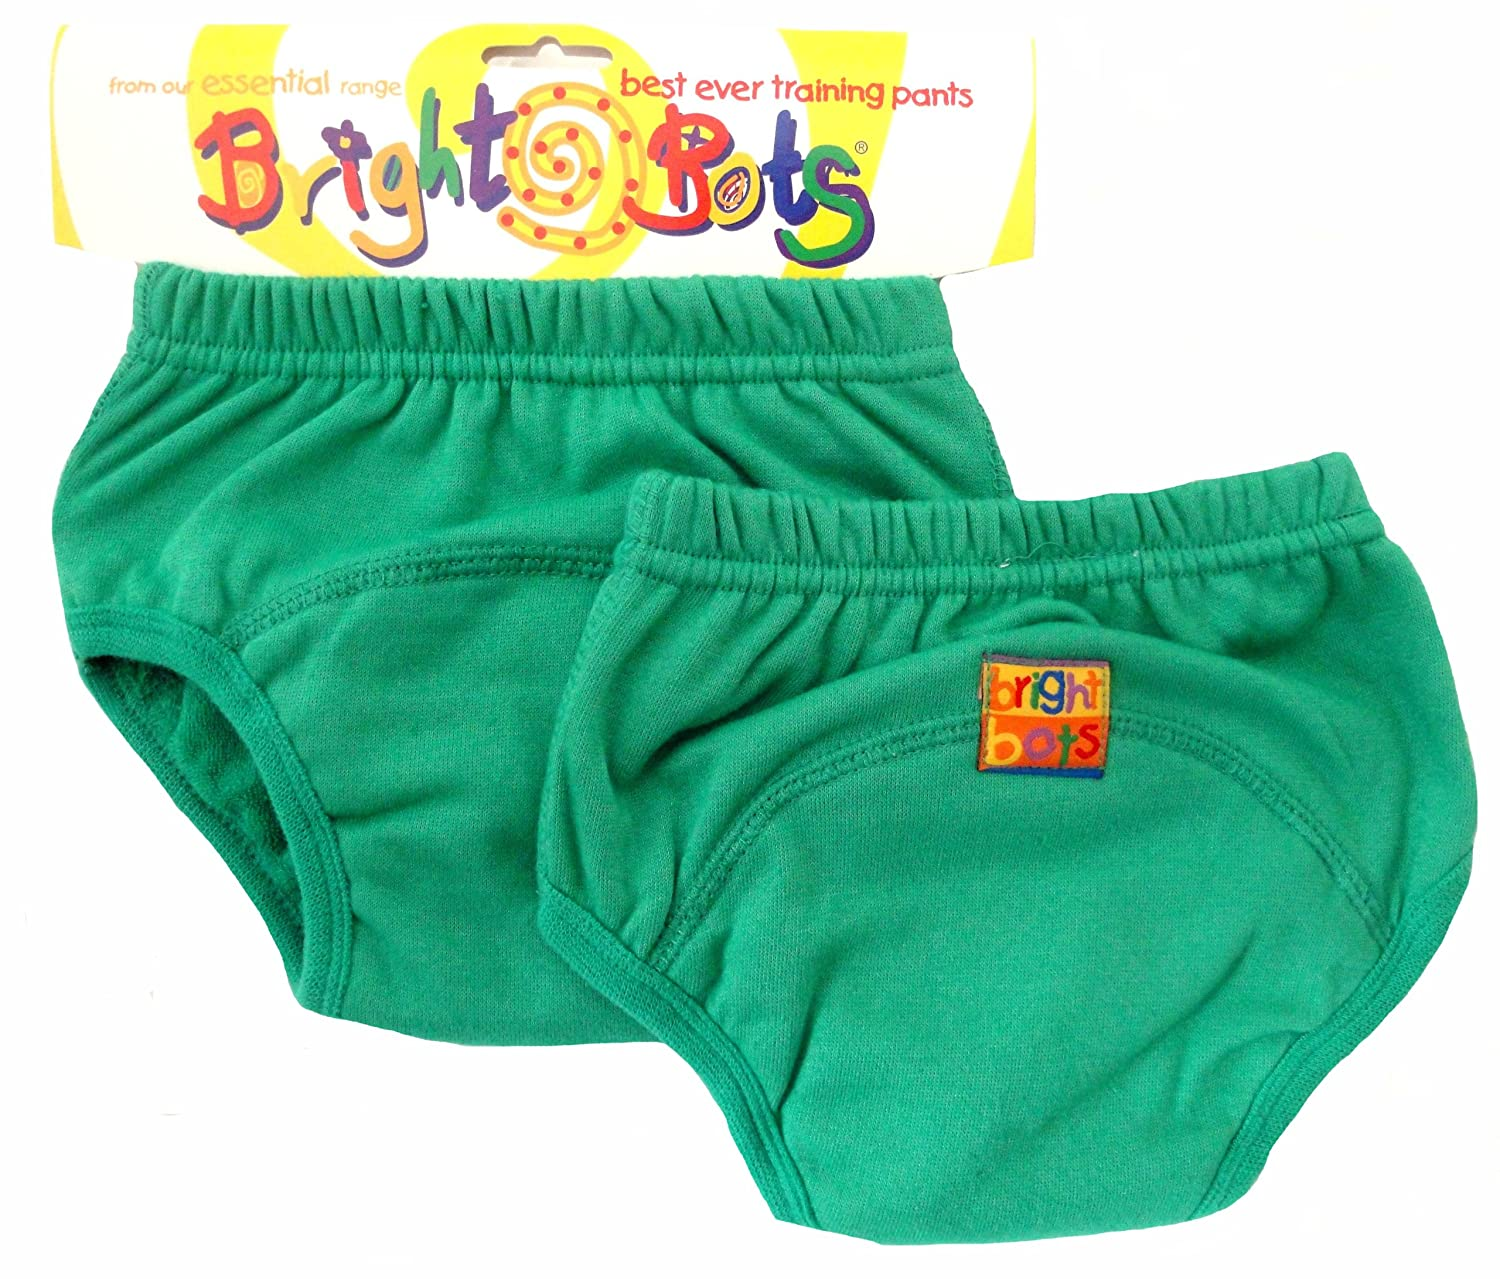 Bright Bots Potty Training Pants (Twin Pack, Green, Small, 12 - 18 months) 2AAETRA1-2GS